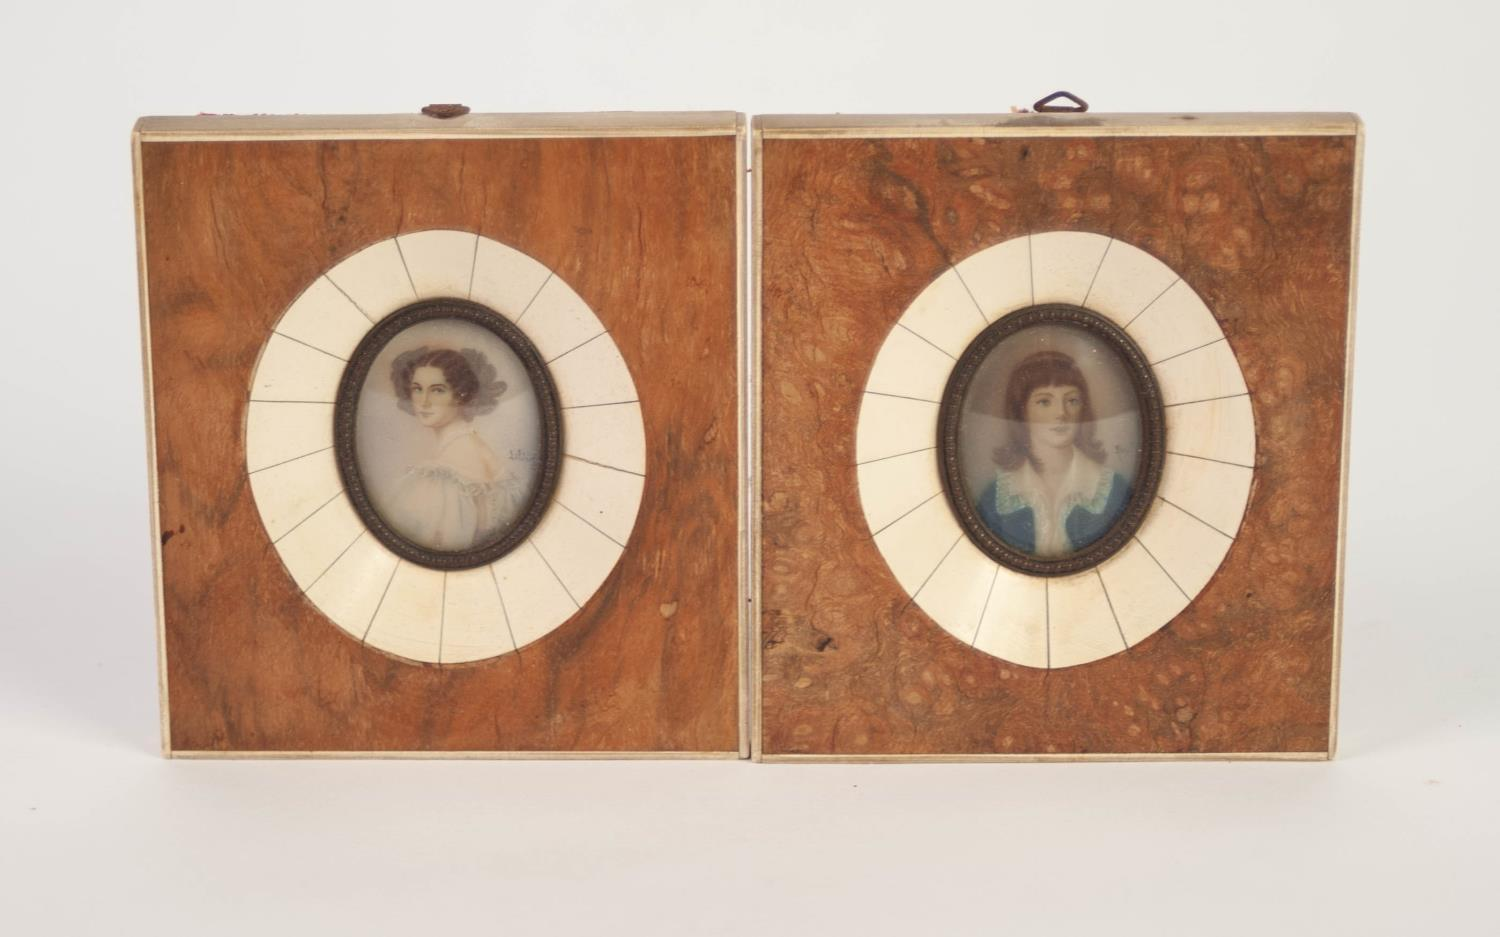 Lot 852 - TWO EARLY 20th CENTURY PASTICHE PORTAIT MINIATURES after Gainsborough and Steiler, in bone and